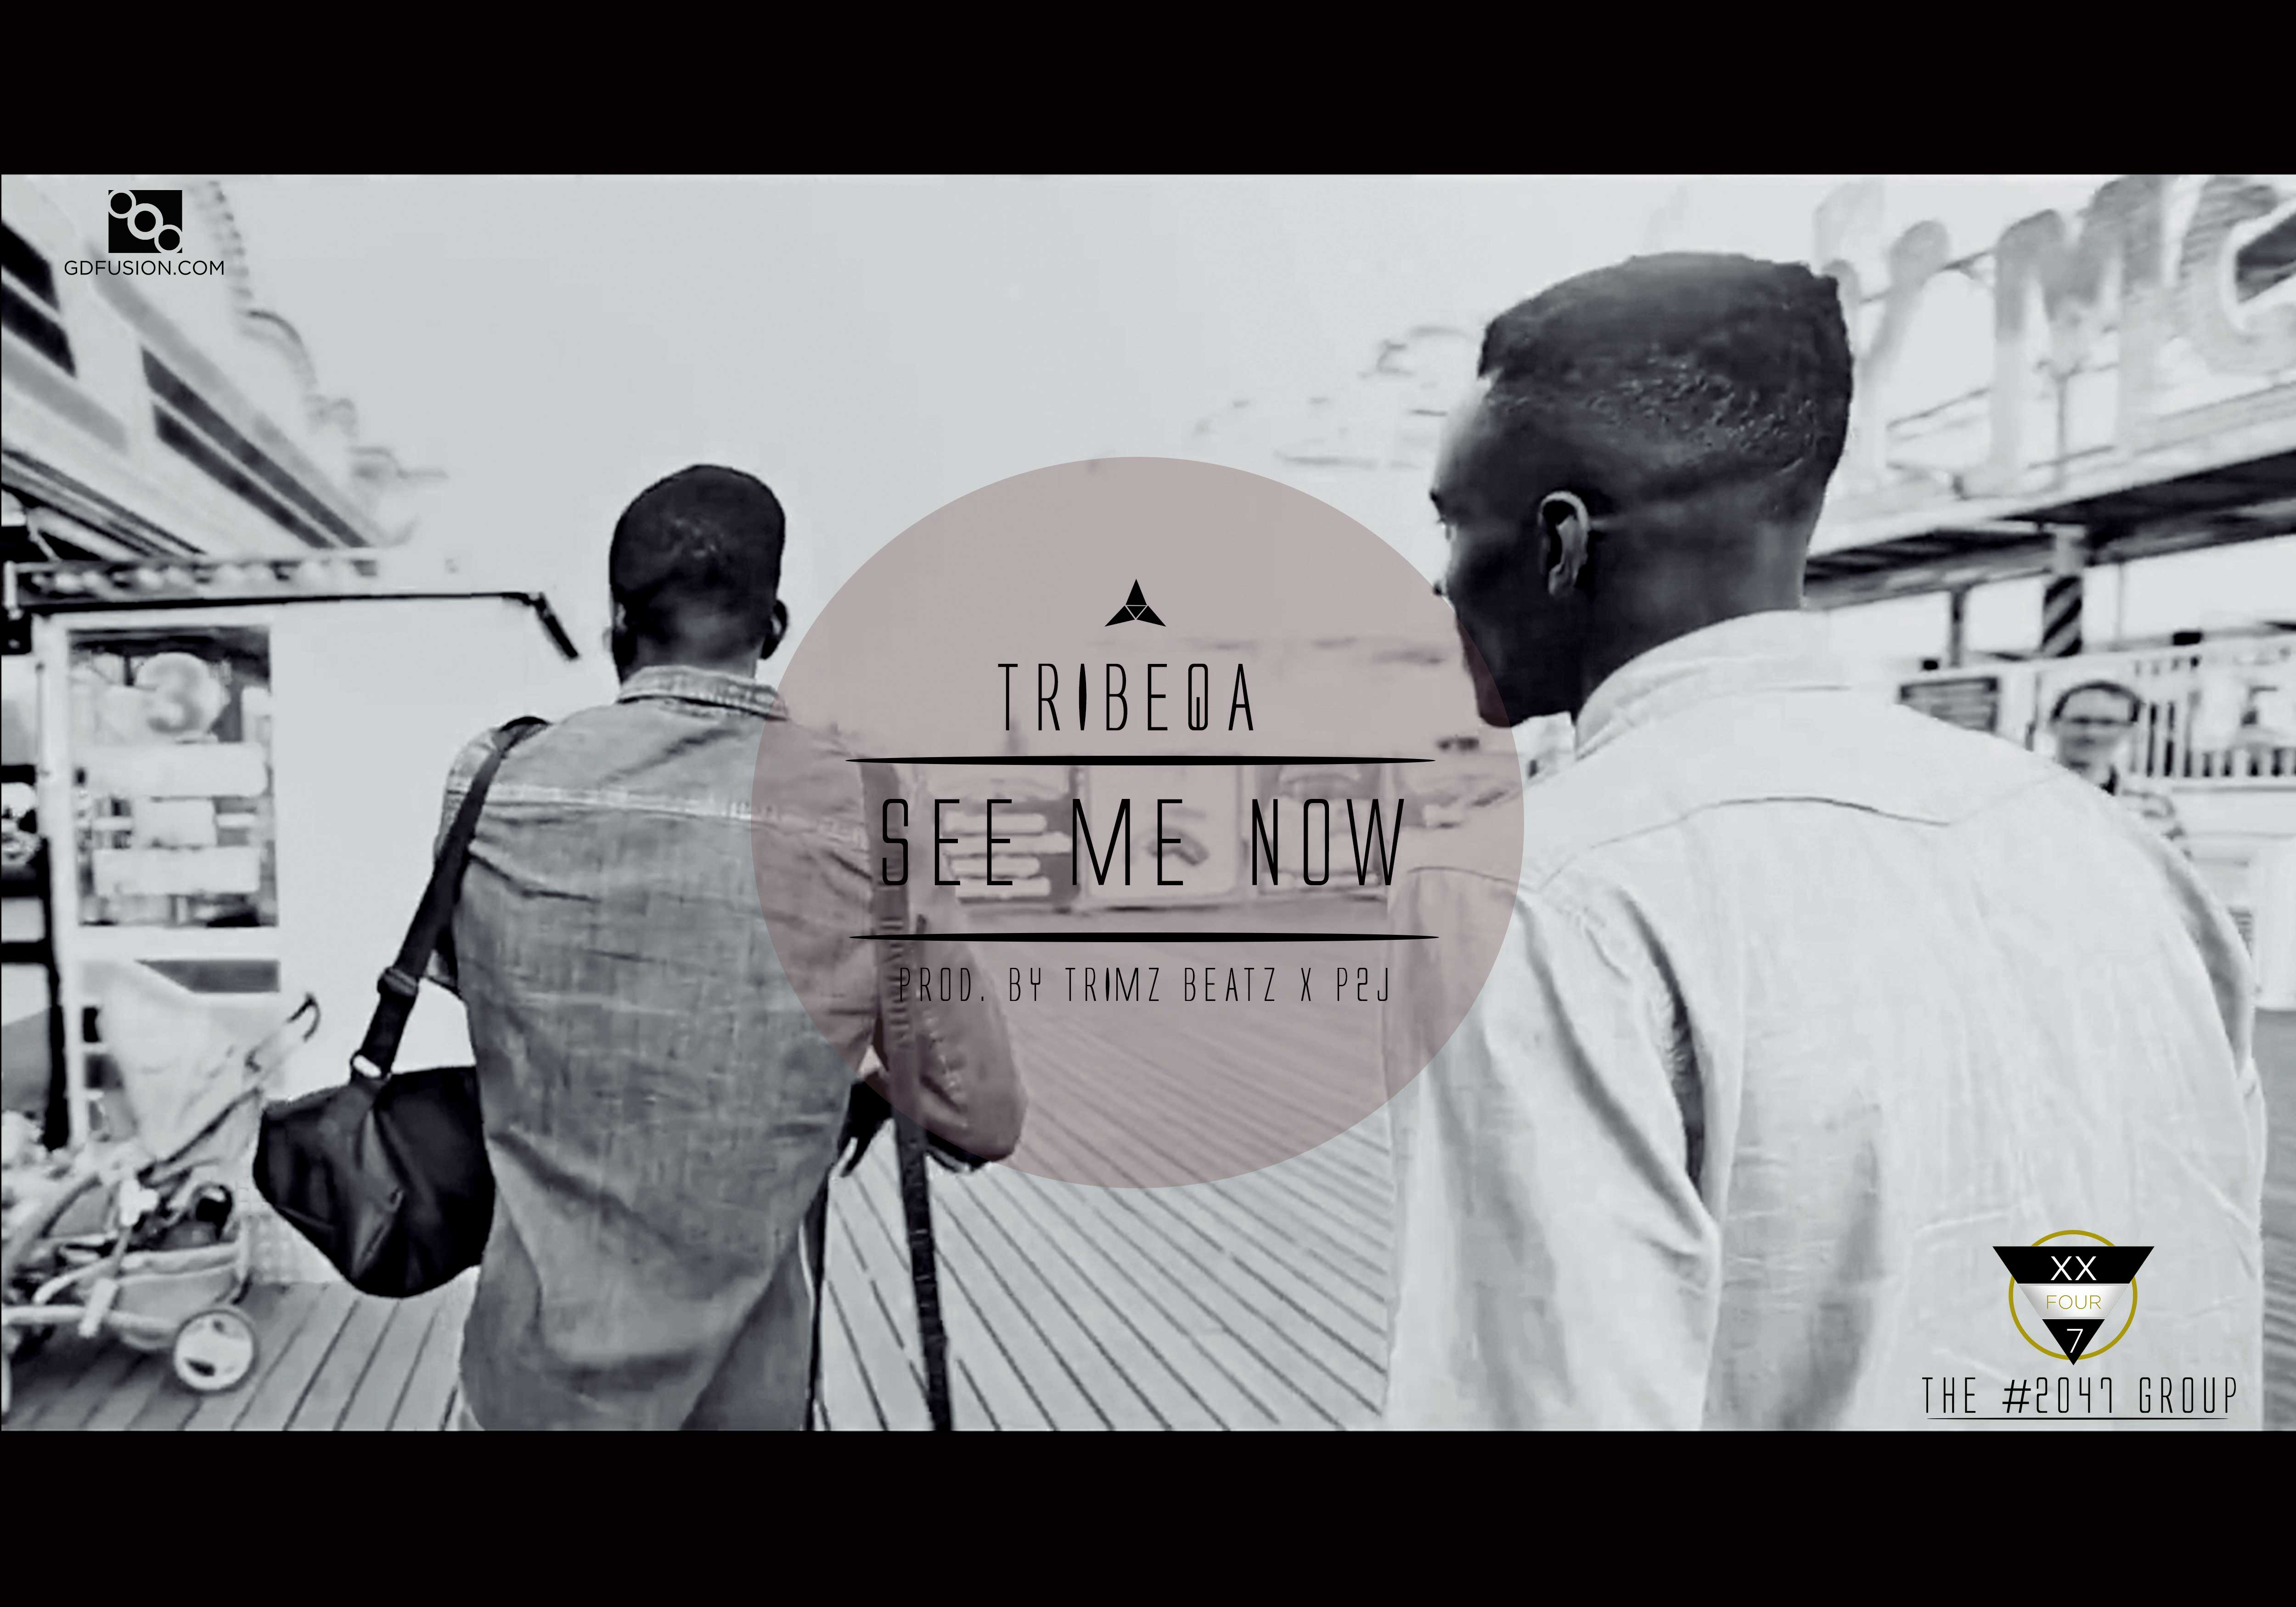 See Me Now- Tribeqa (New Video)